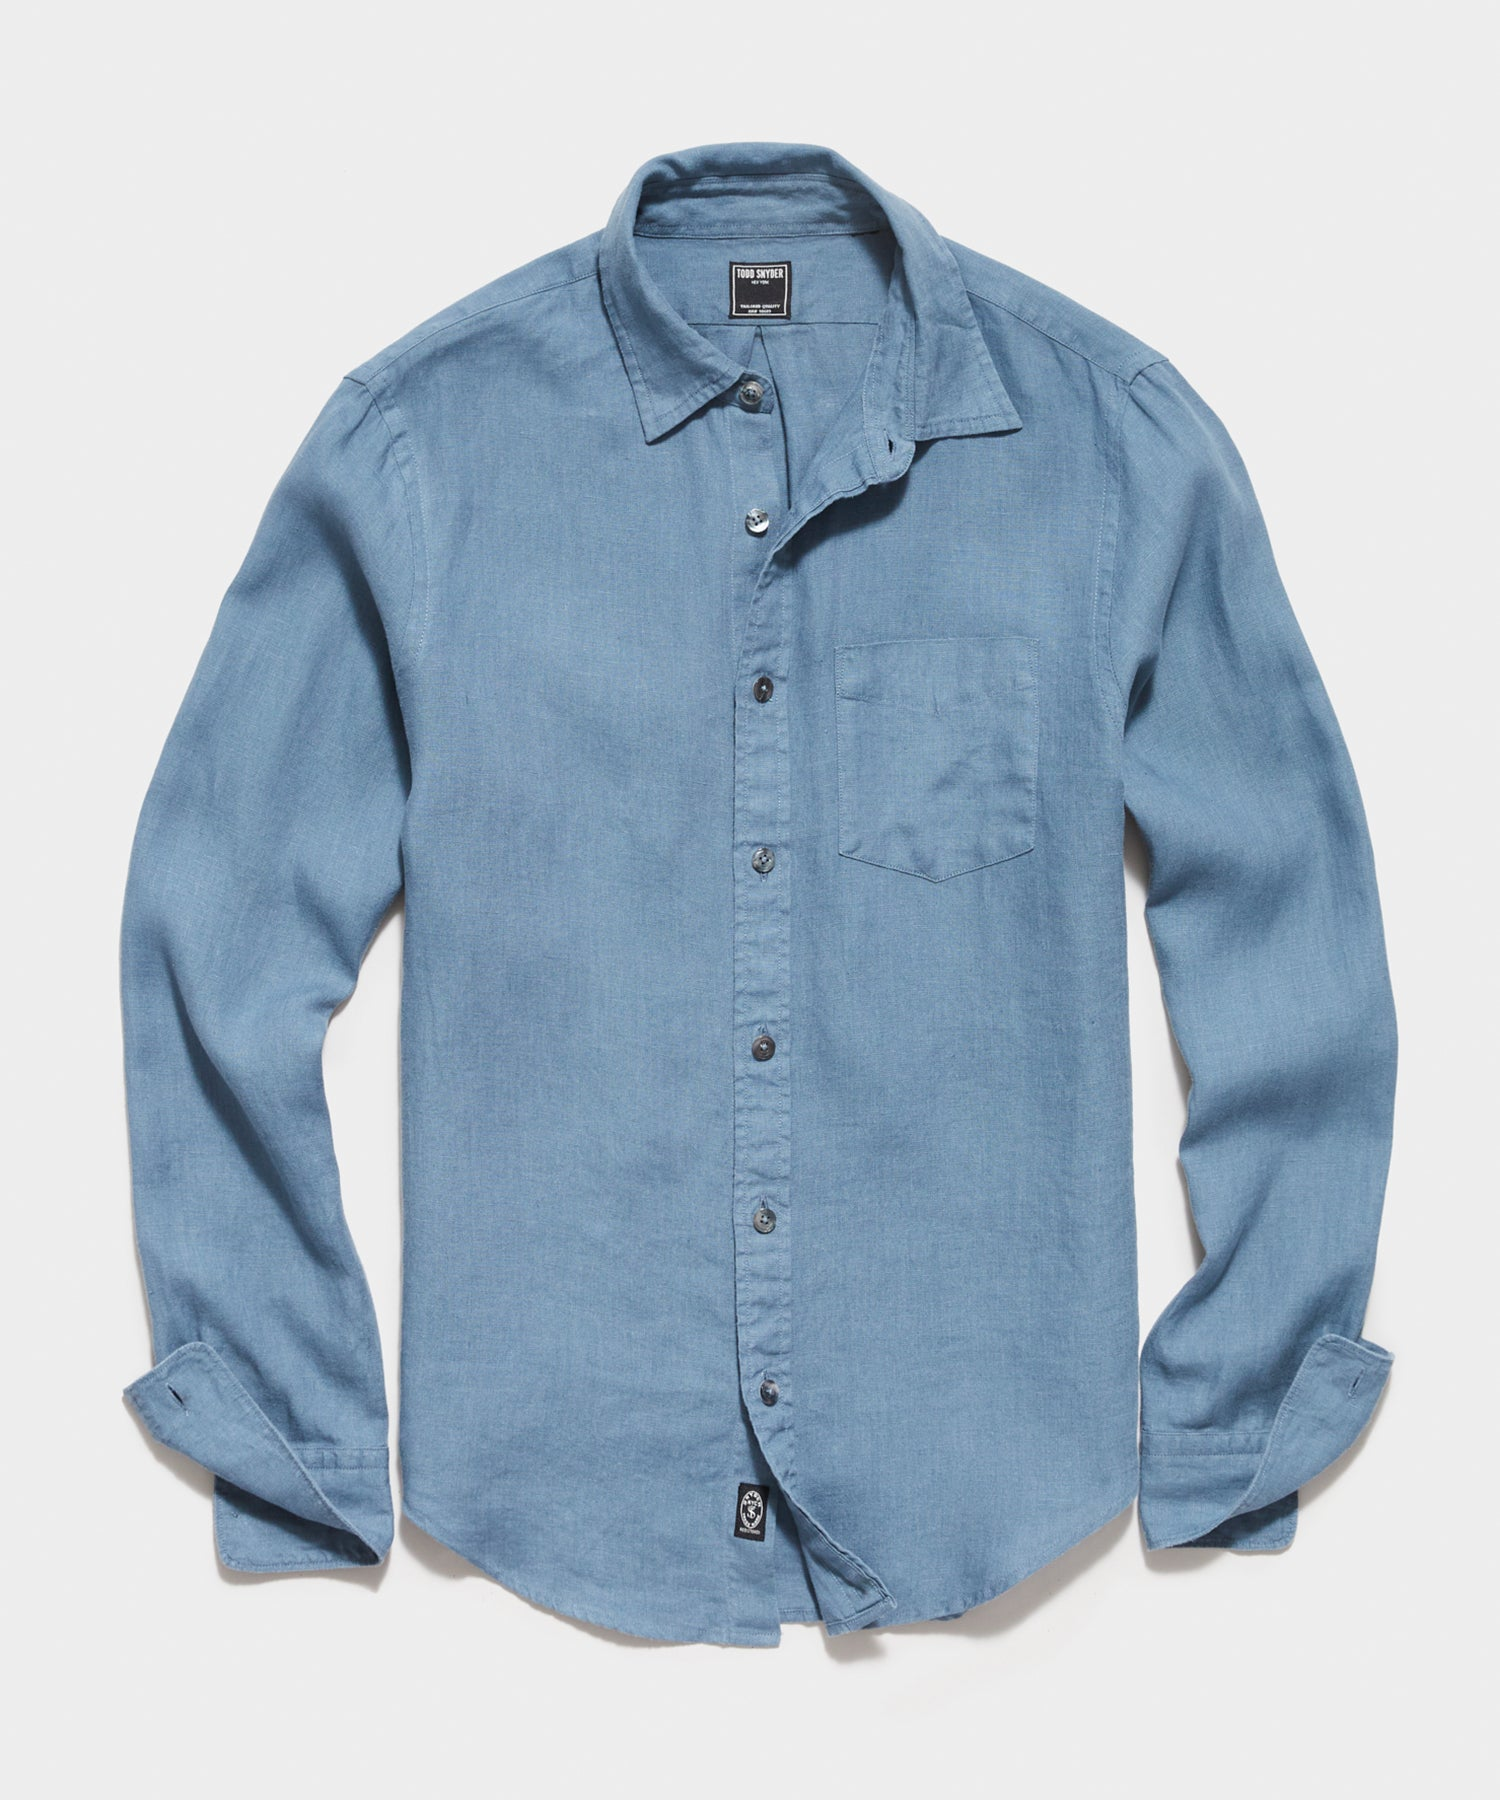 Irish Linen Spread Collar Long Sleeve Shirt in Blue